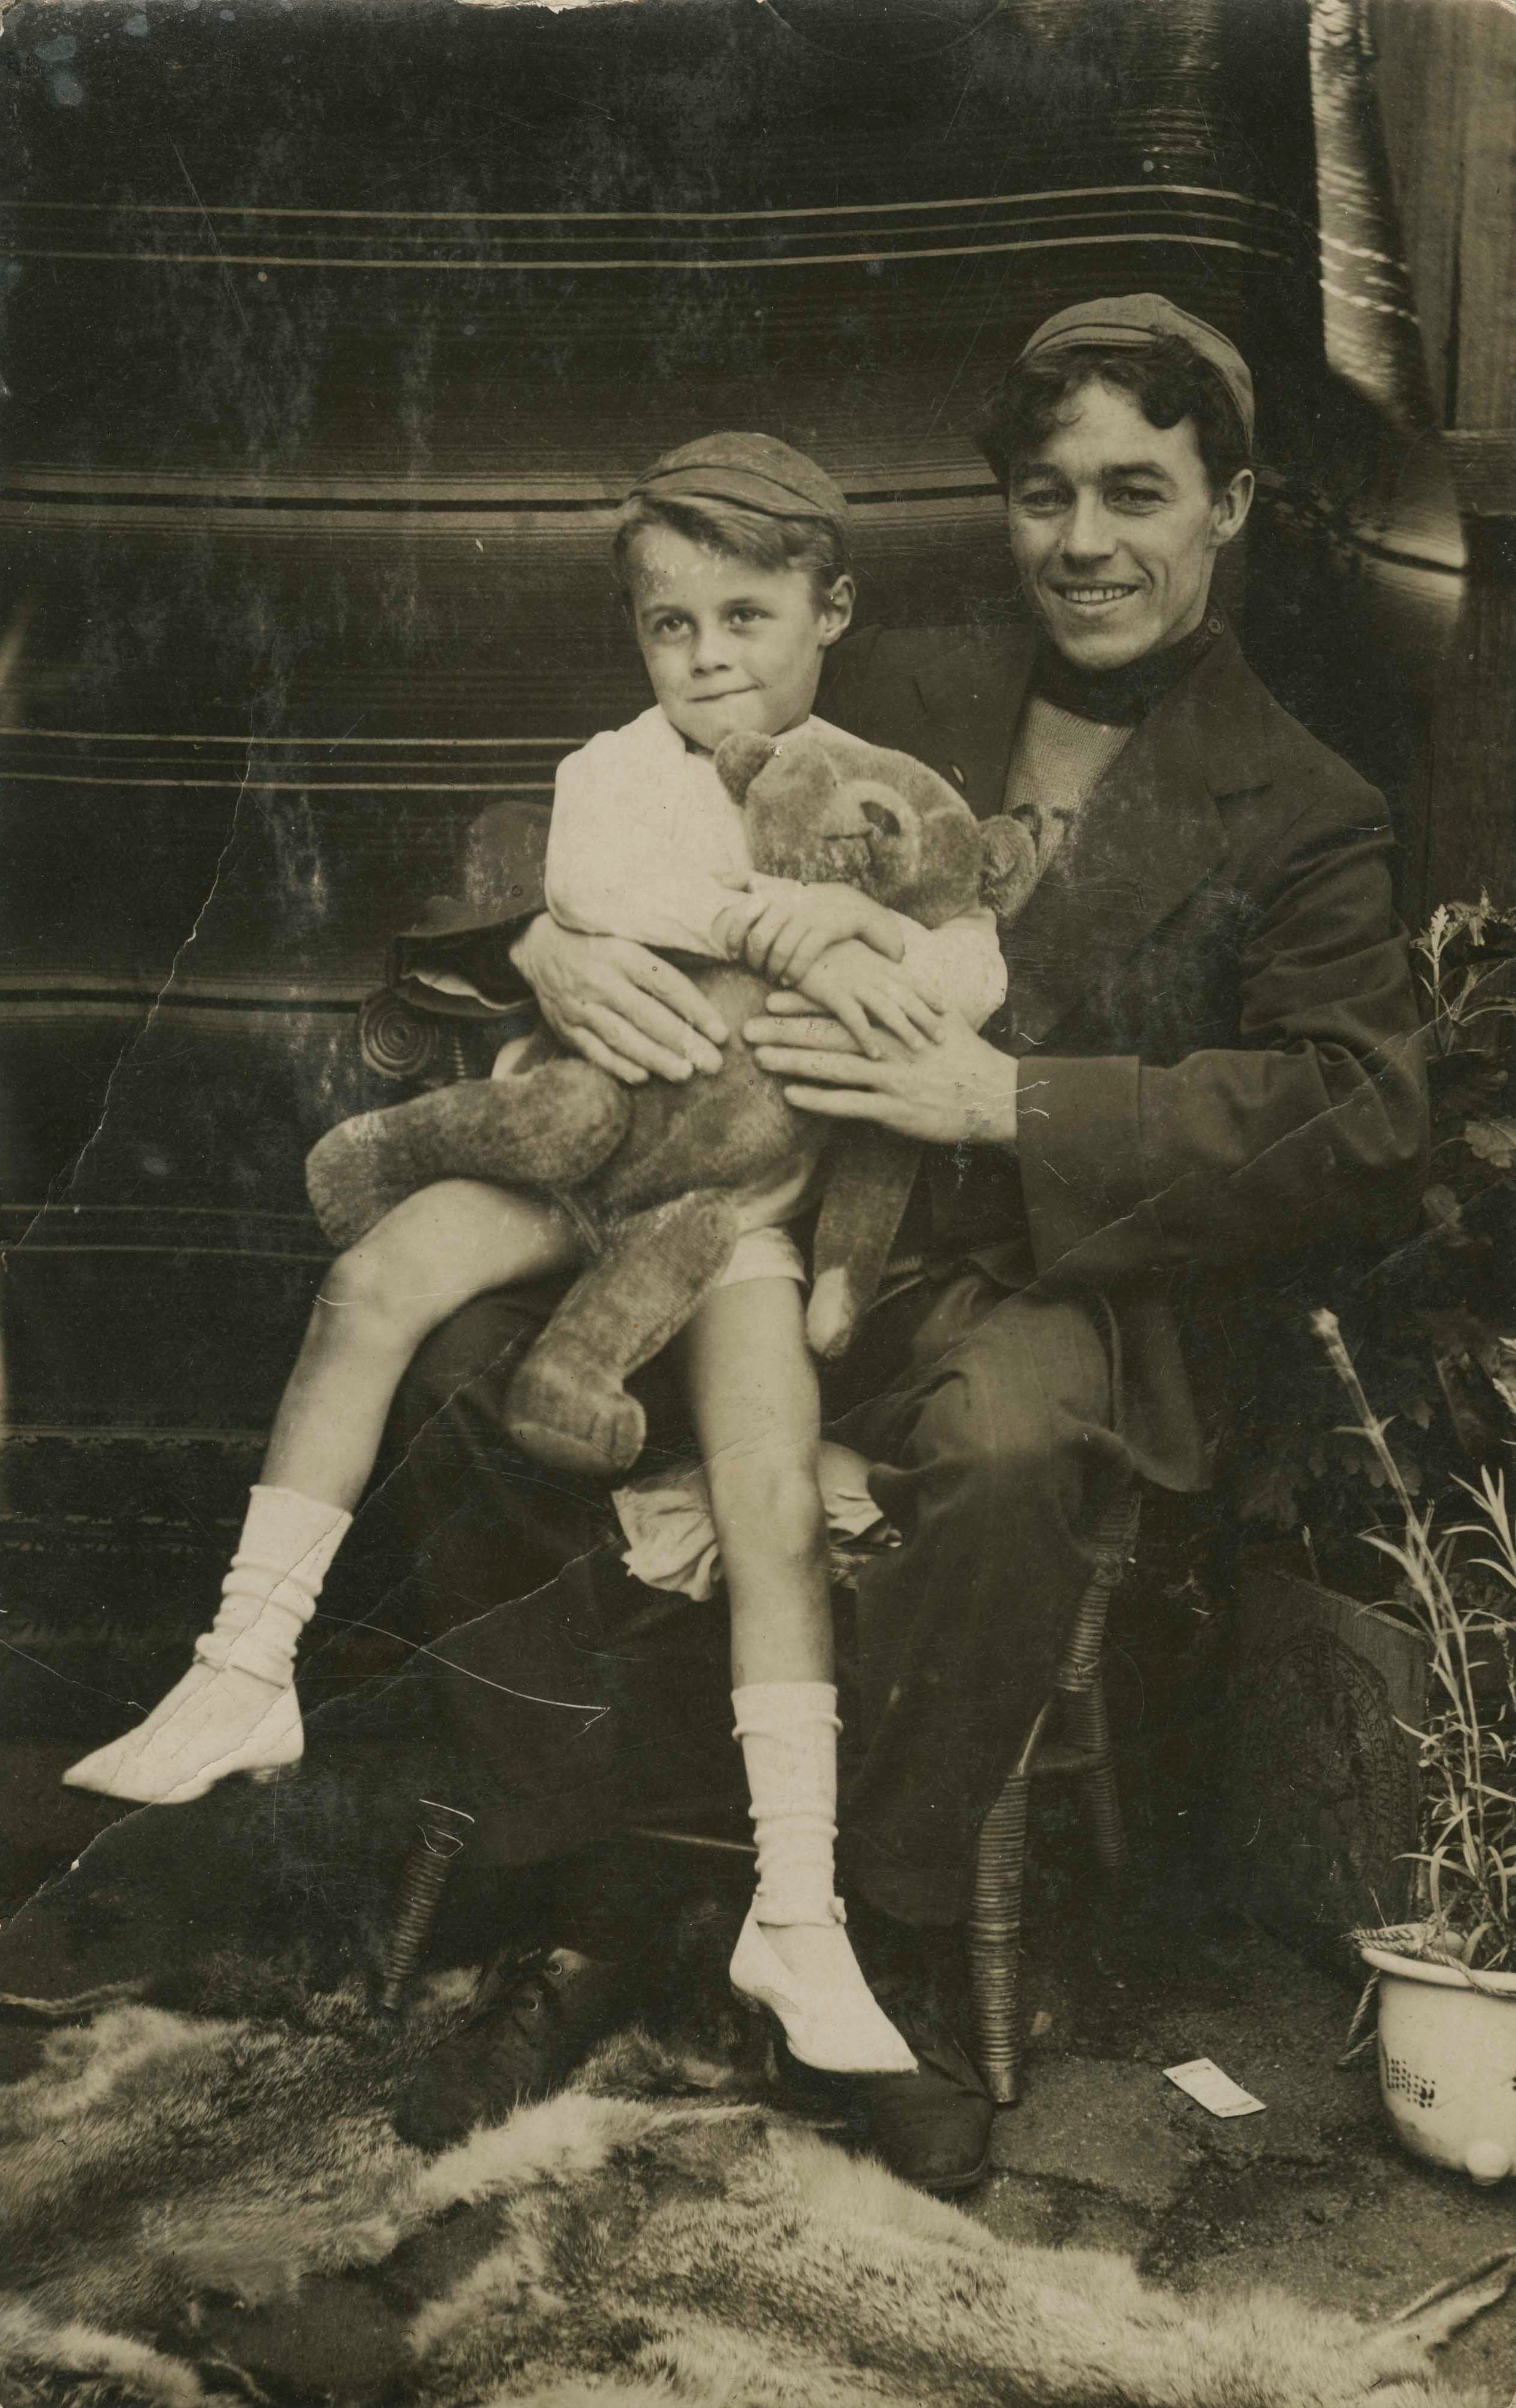 Photographic postcard of a man, a young boy and a teddy bear